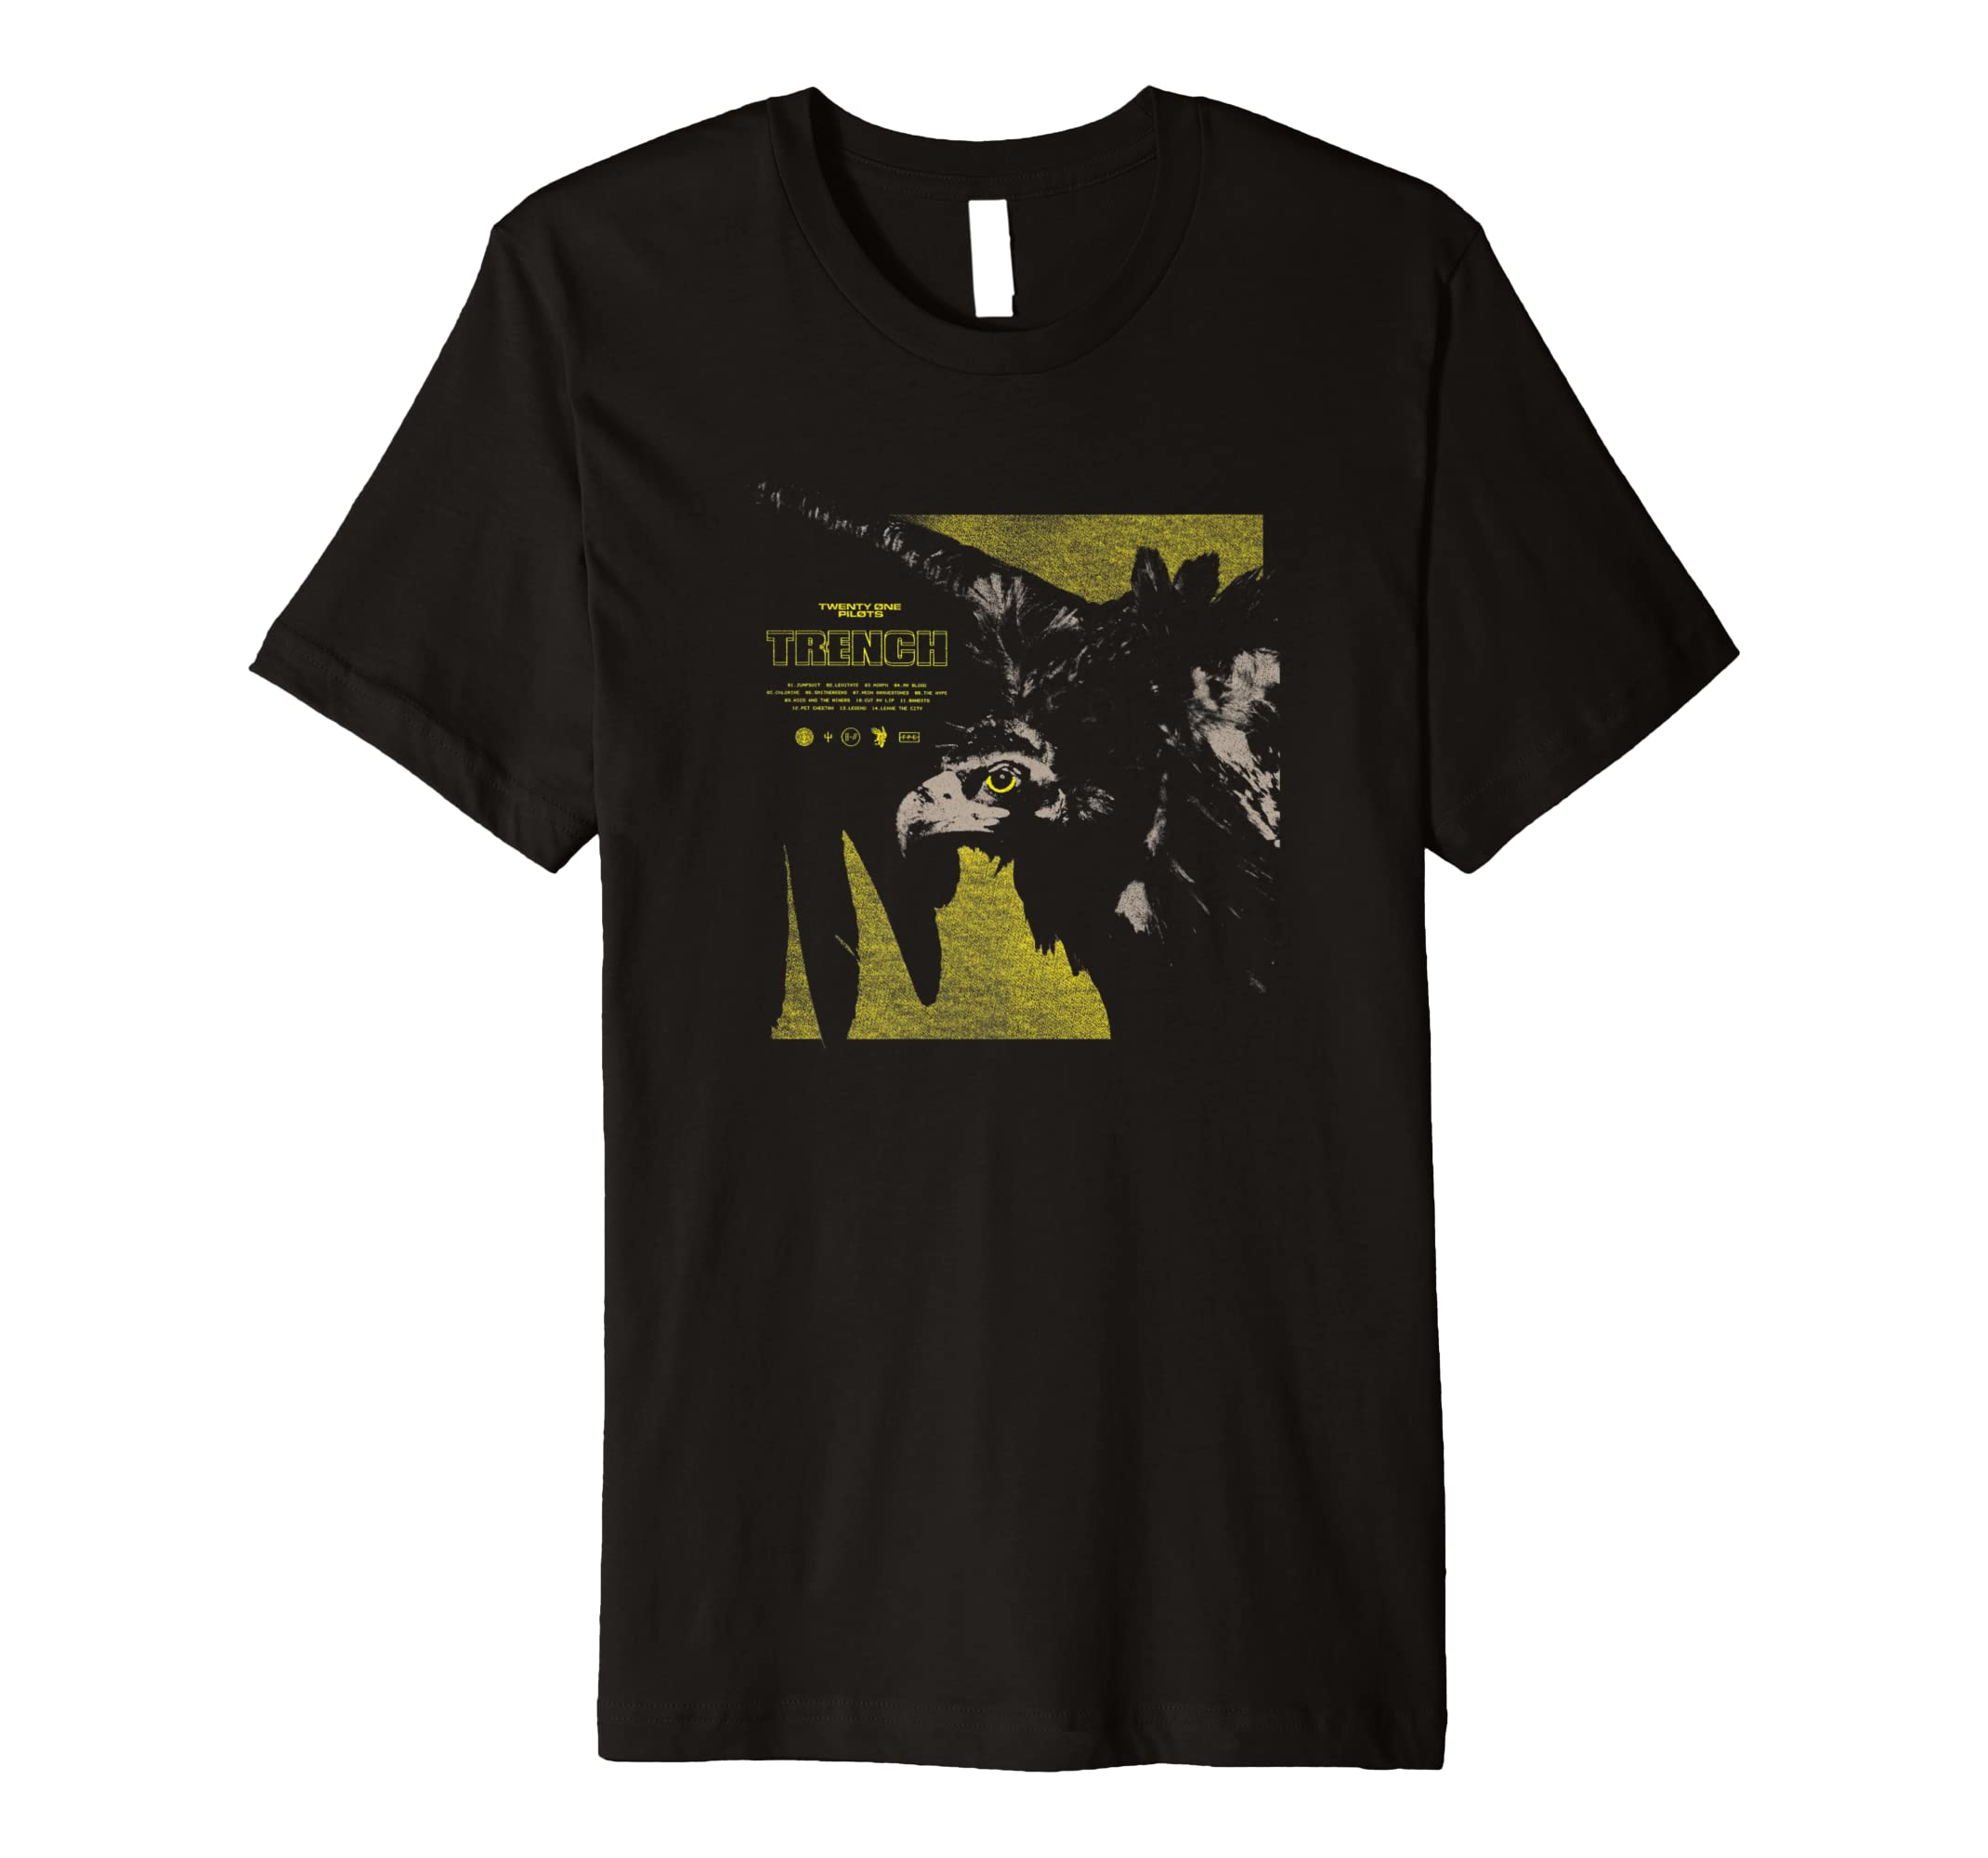 8ede1a87 Amazon.com: Twenty One Pilots Trench Cover T-Shirt: Clothing